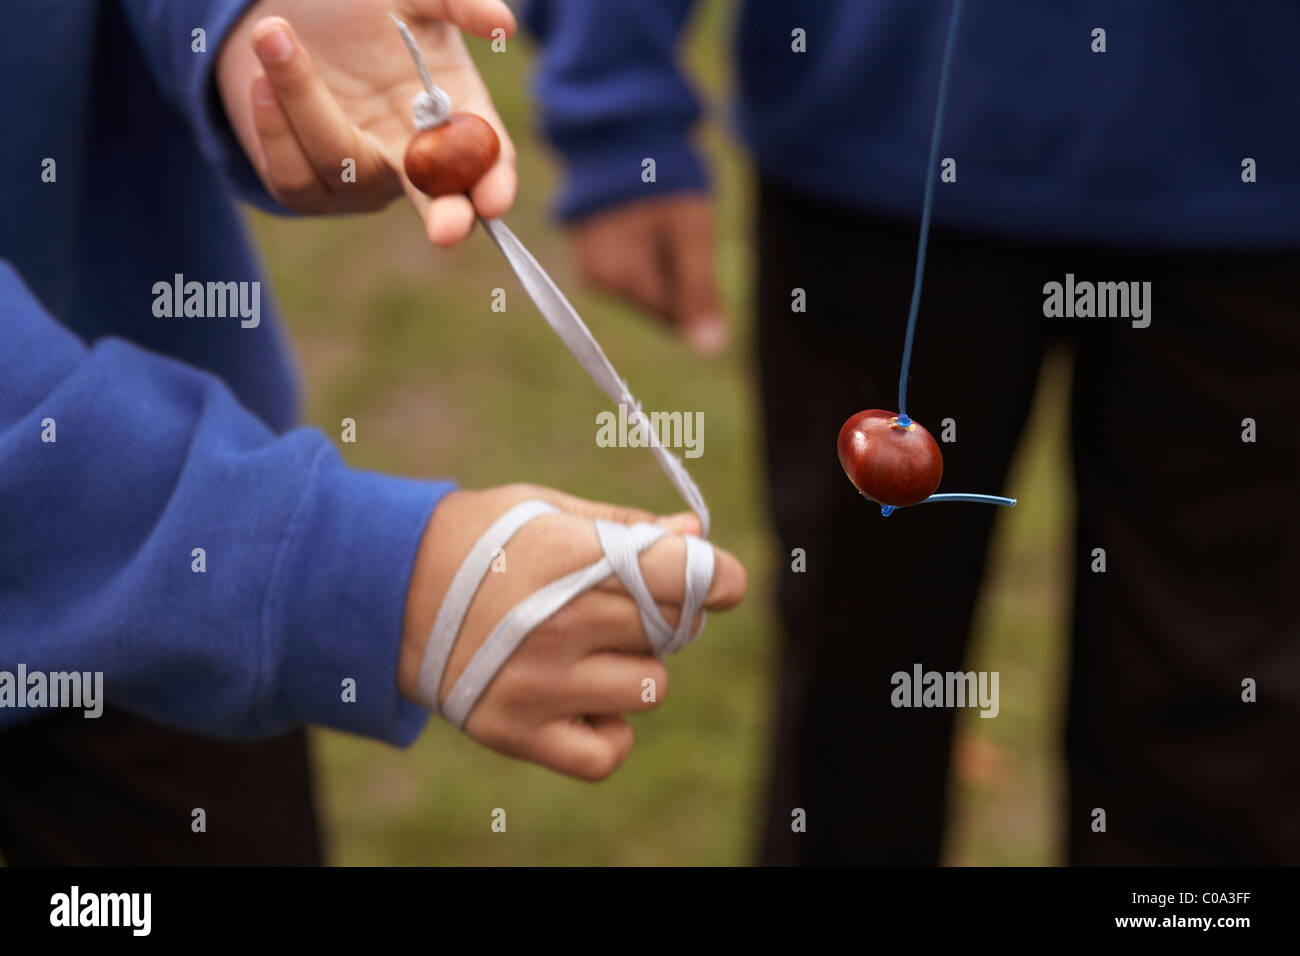 Children playing a game of conkers in the playground at school wearing blue school uniforms - Stock Image